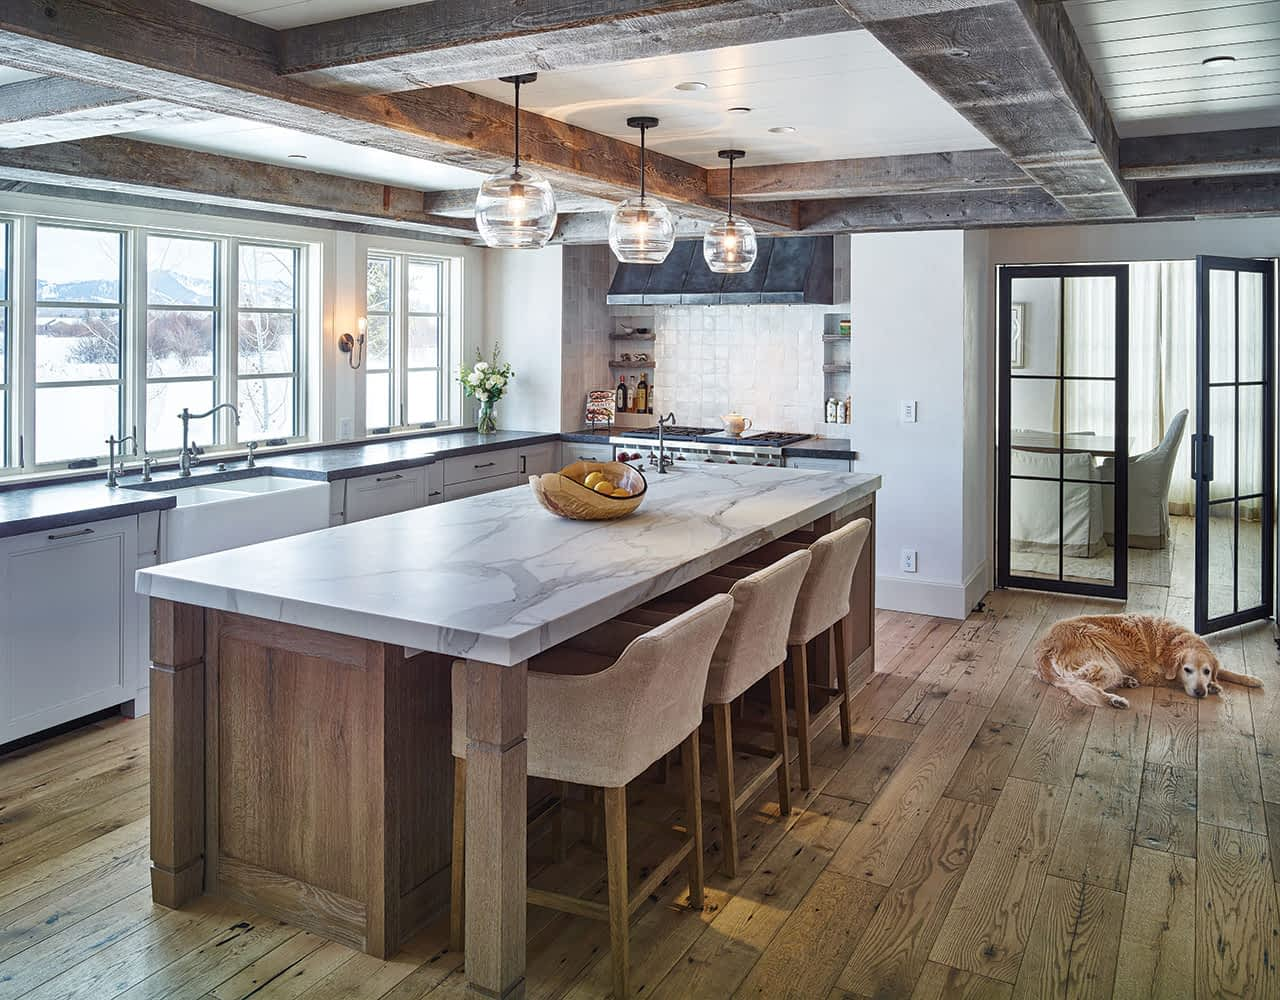 A marble counter provides a beautiful and functional space for cooking and entertaining. Steel doors by Jeff Brandner Designs in Bozeman, Montana, lead into the dining room. Willow Creek Woodworks of Idaho Falls built the Shaker-style cabinets.